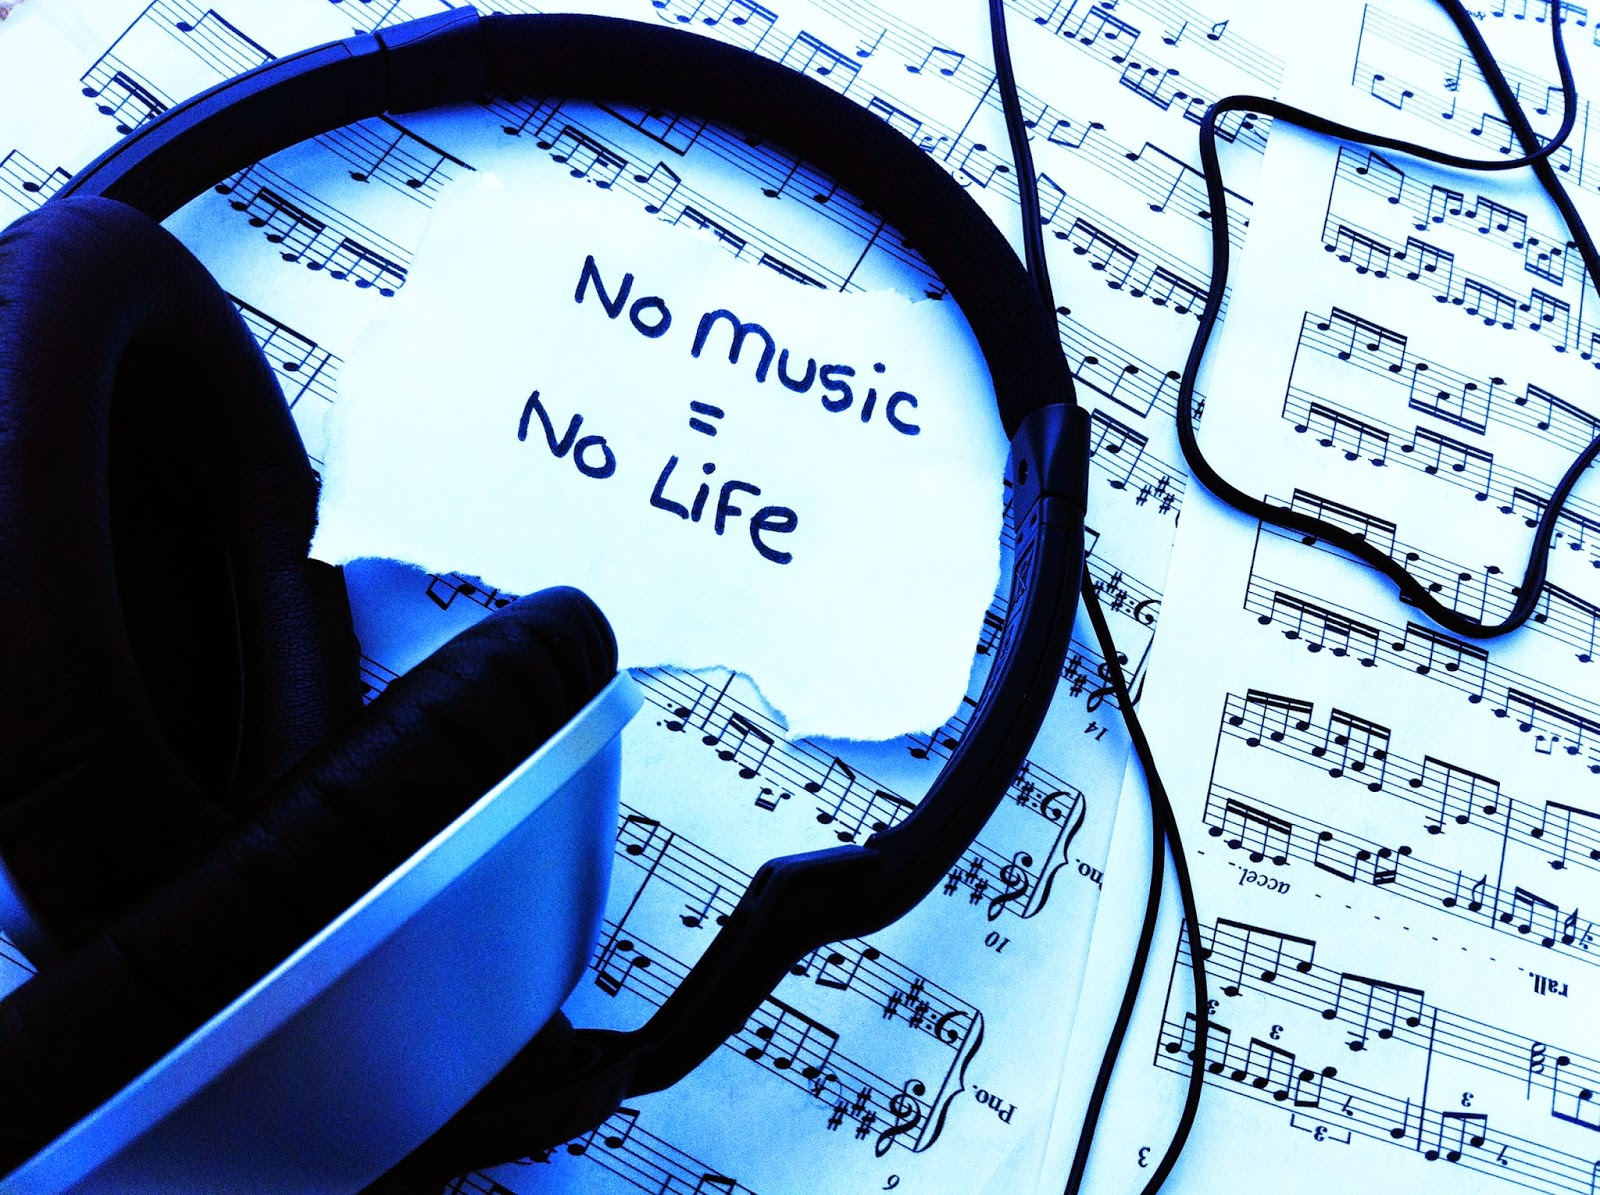 music and life 4457 quotes have been tagged as music: friedrich nietzsche: 'without music, life would be a mistake', bob marley: 'one good thing about music, when it h.